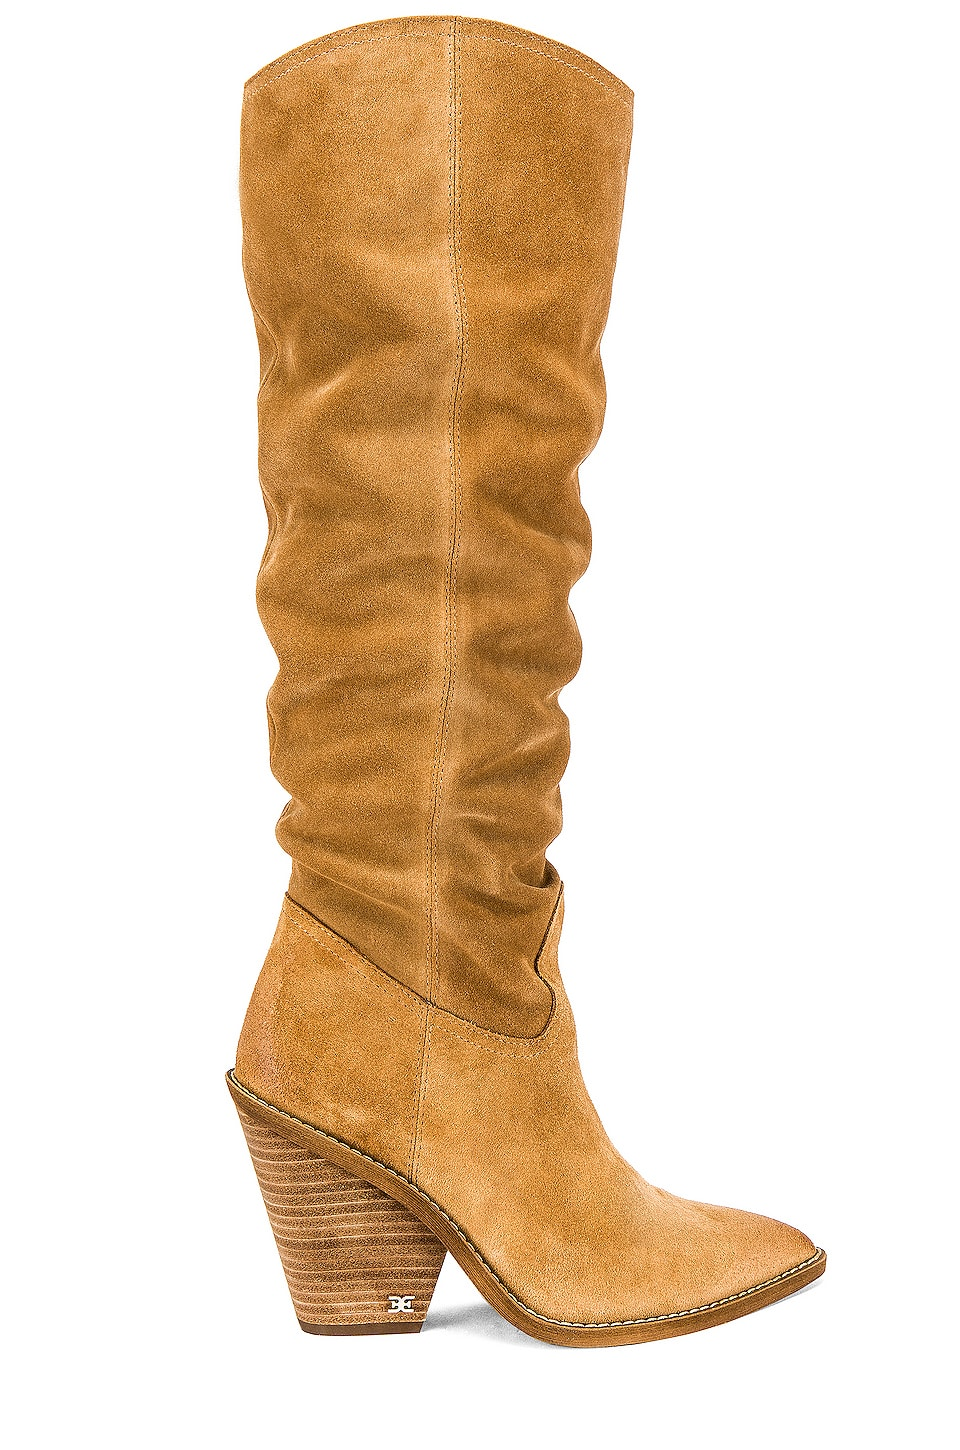 Sam Edelman Indigo Boot in Golden Caramel